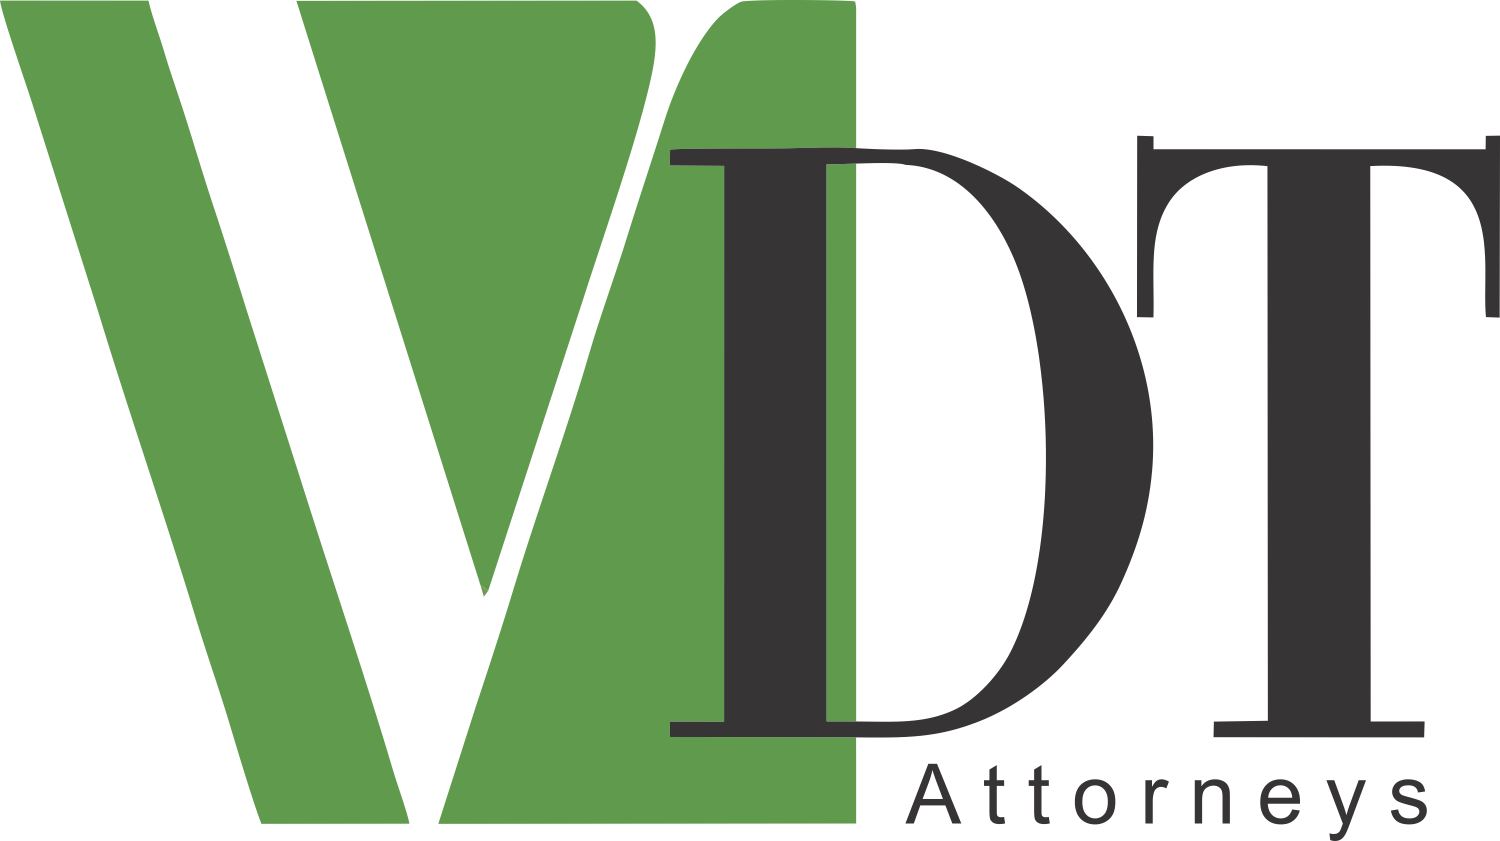 VDT Attorneys Inc.